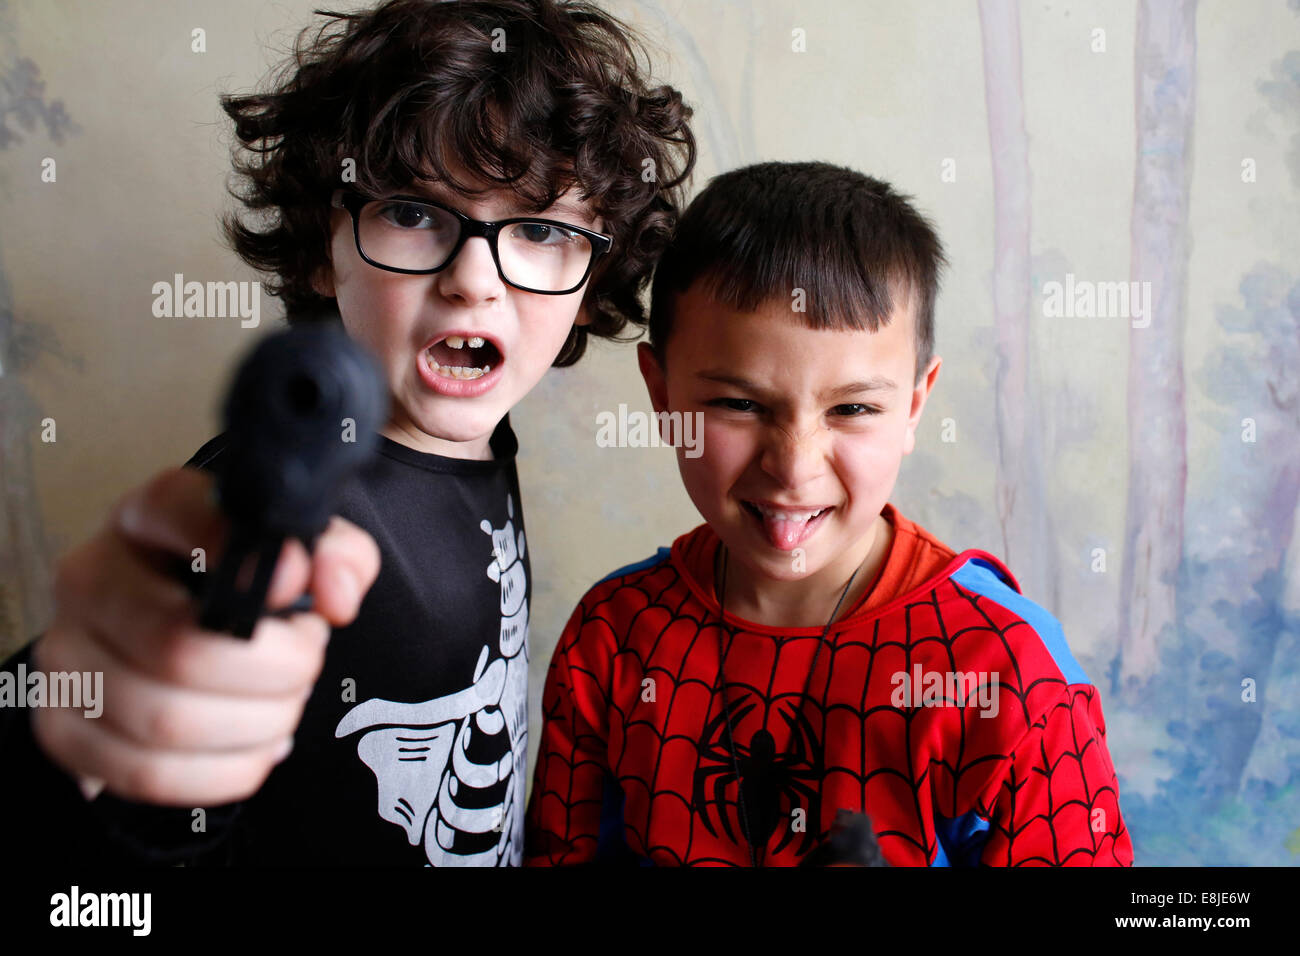 7-year-old boys - Stock Image